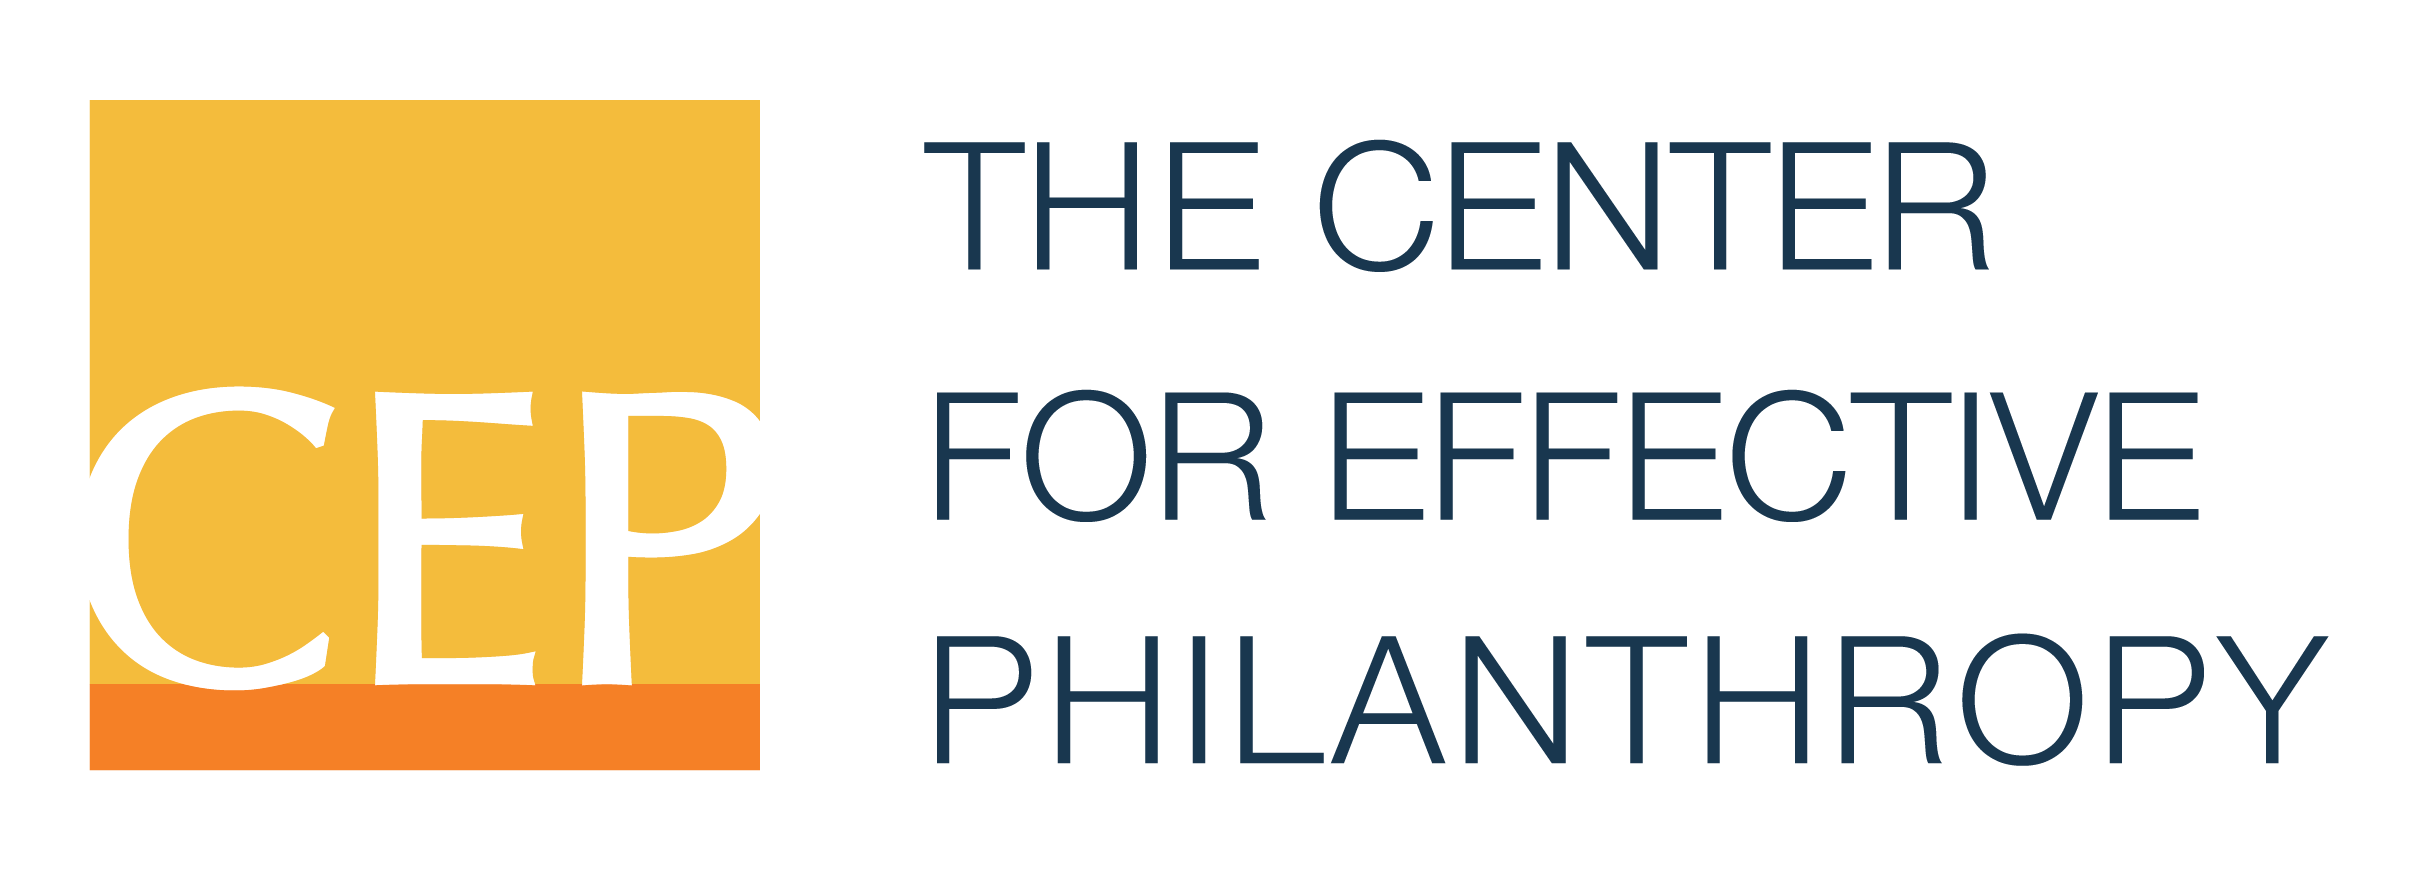 Center for Effective Philanthropy Logo